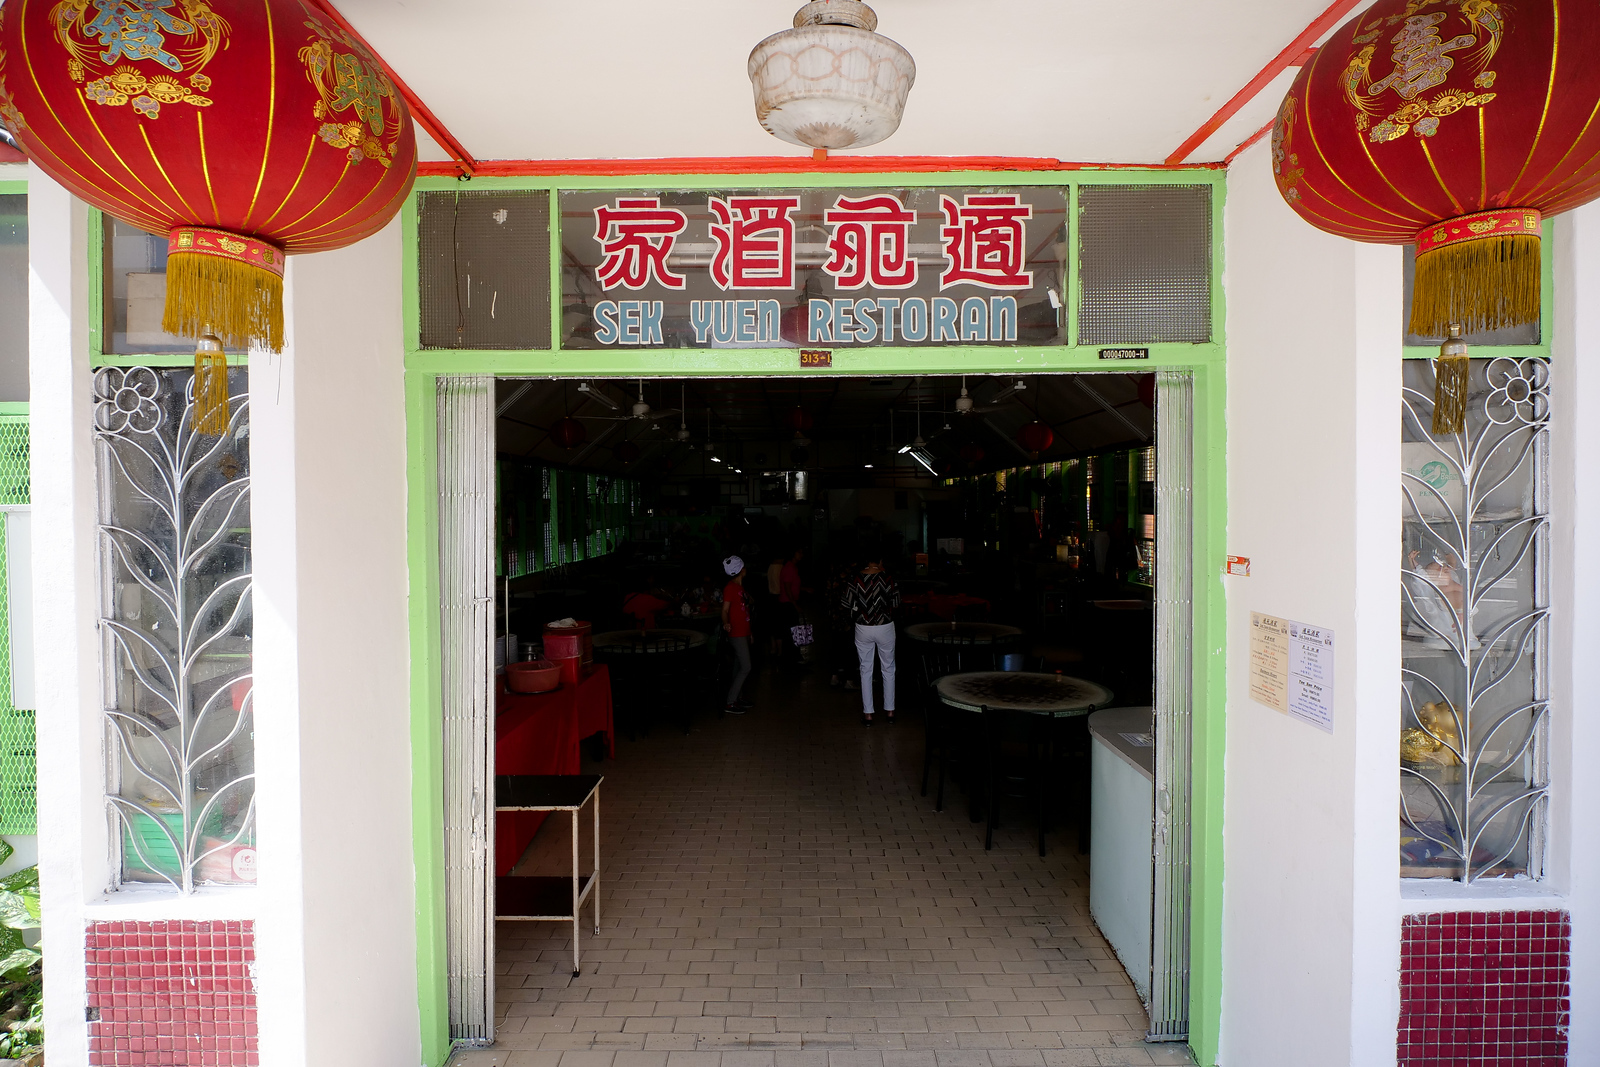 I love the atmosphere at Sek Yuen Restoran, and you just know from the first few moments that you are in for what can only be called Chinese comfort food with a tropical Malay twist